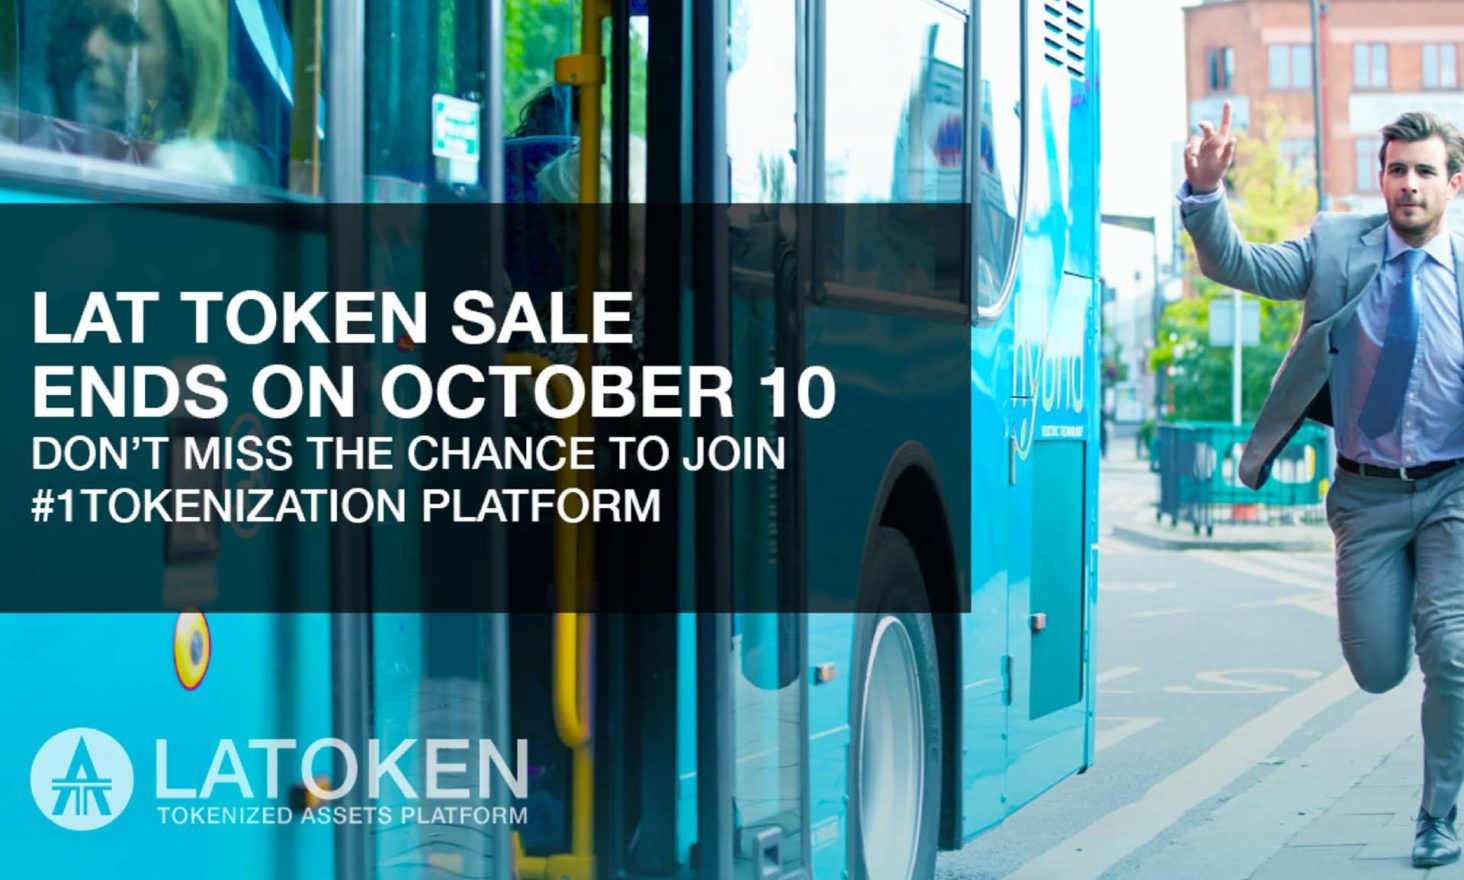 Last Day of LAT Token Sale. Don't Miss The Chance To Join